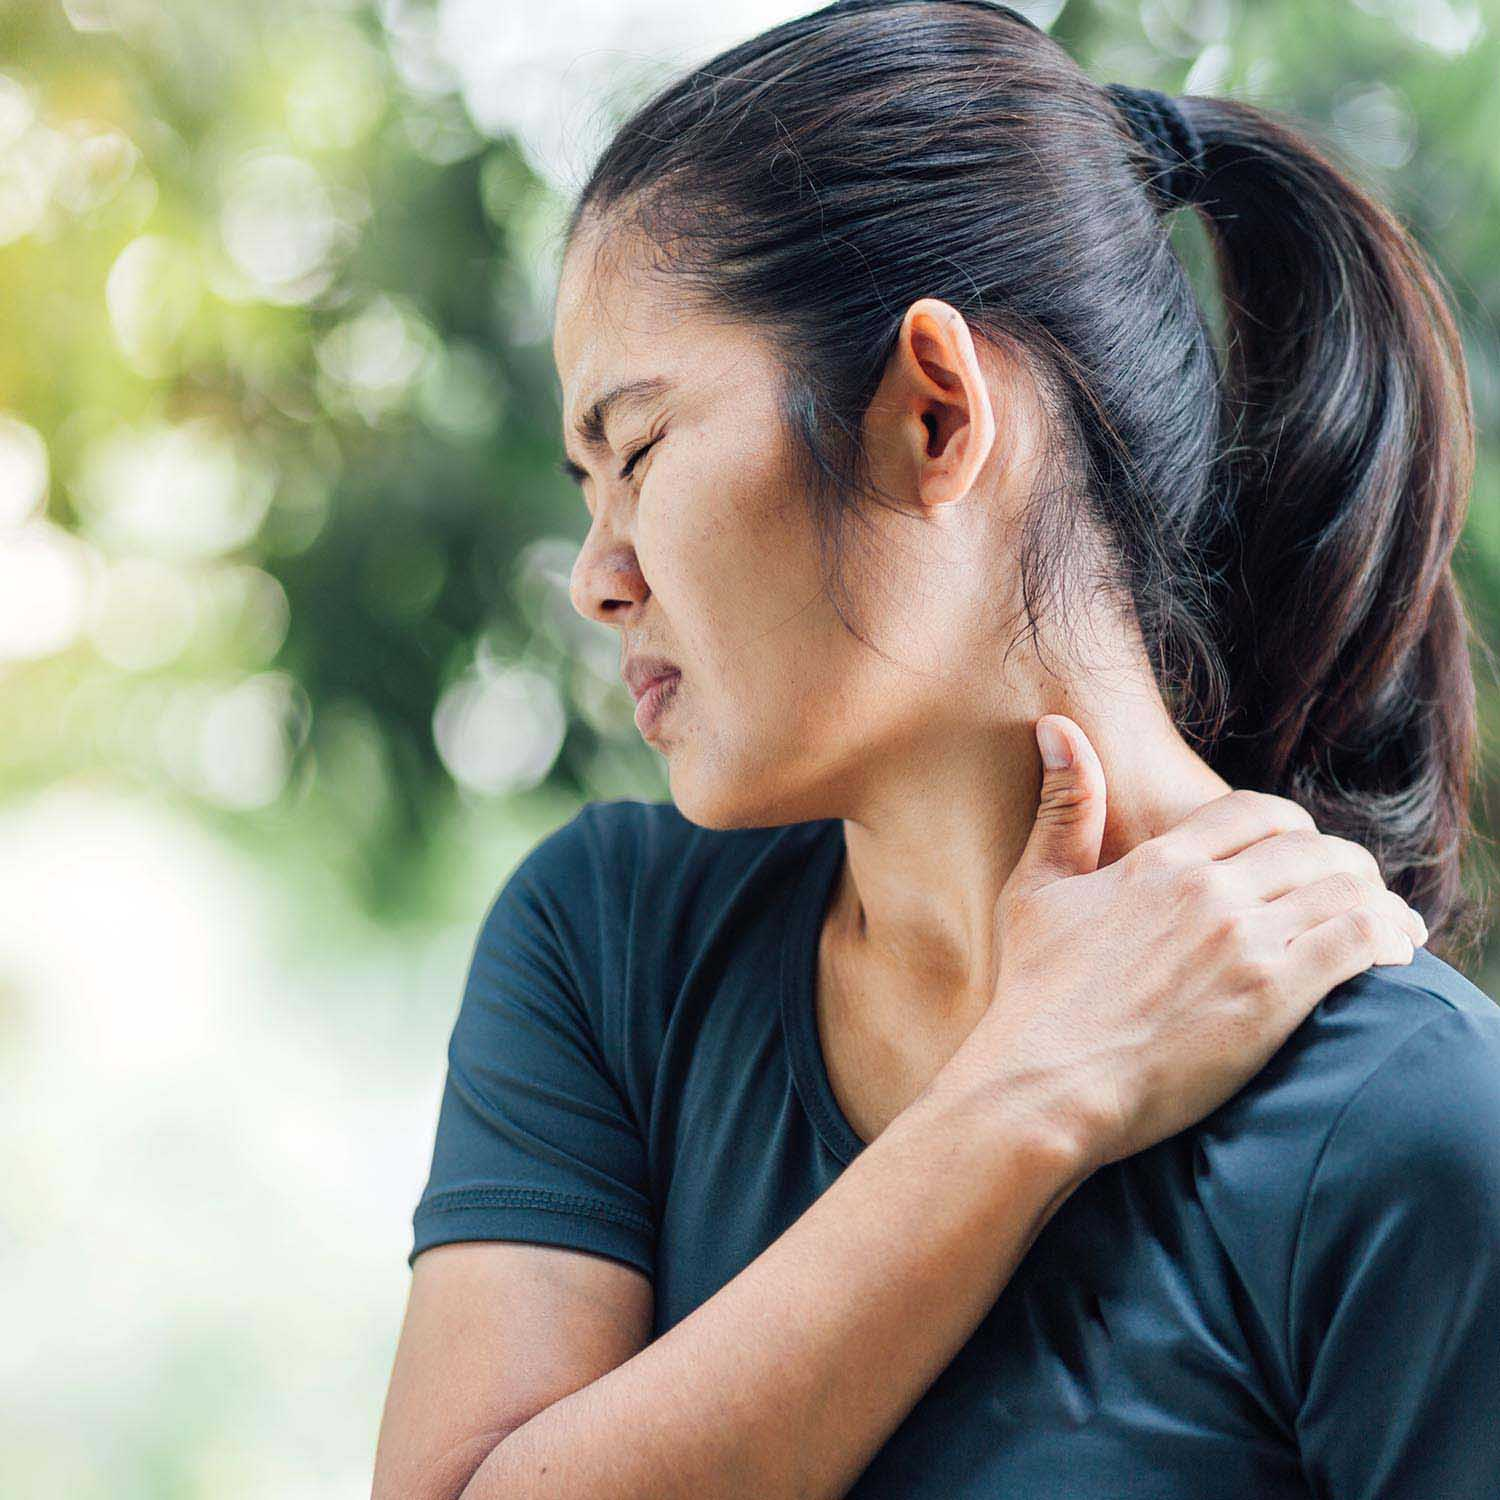 Woman rubbing neck in pain